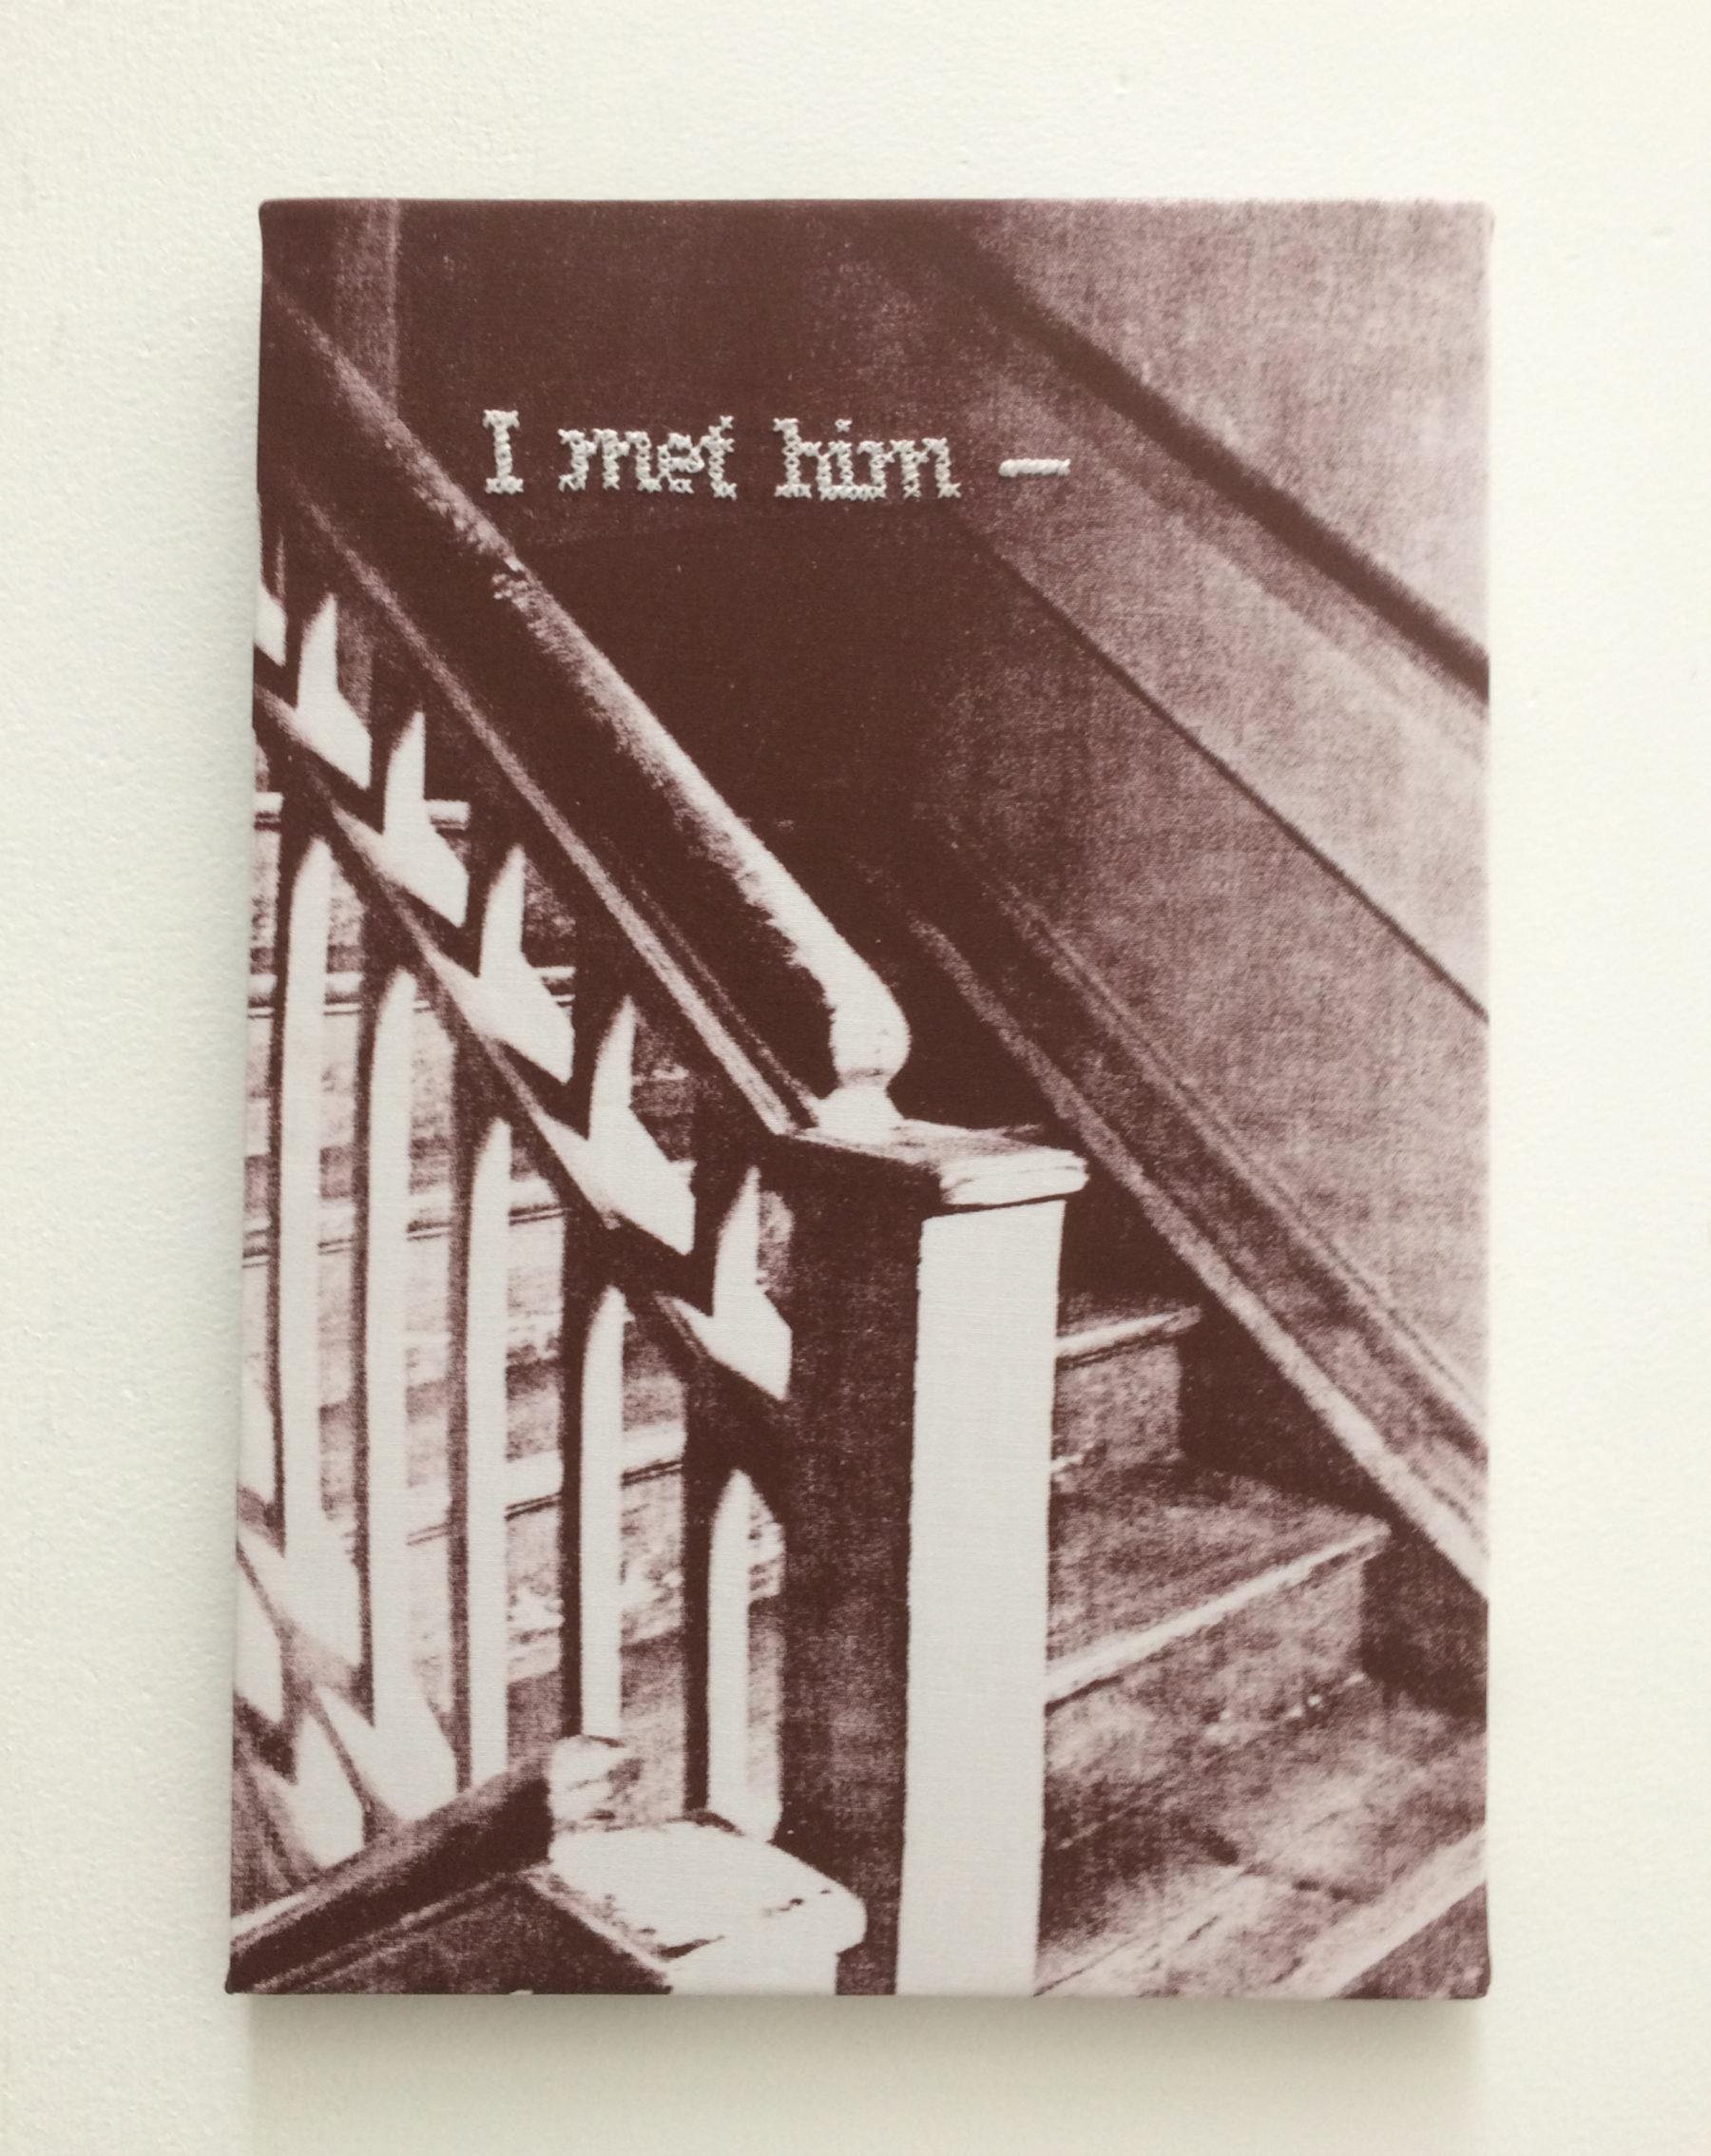 'I met him' - (Emily Dickinson)- silkscreen on canvas - text embroidered by hand - 35 x 25 cm - 2015